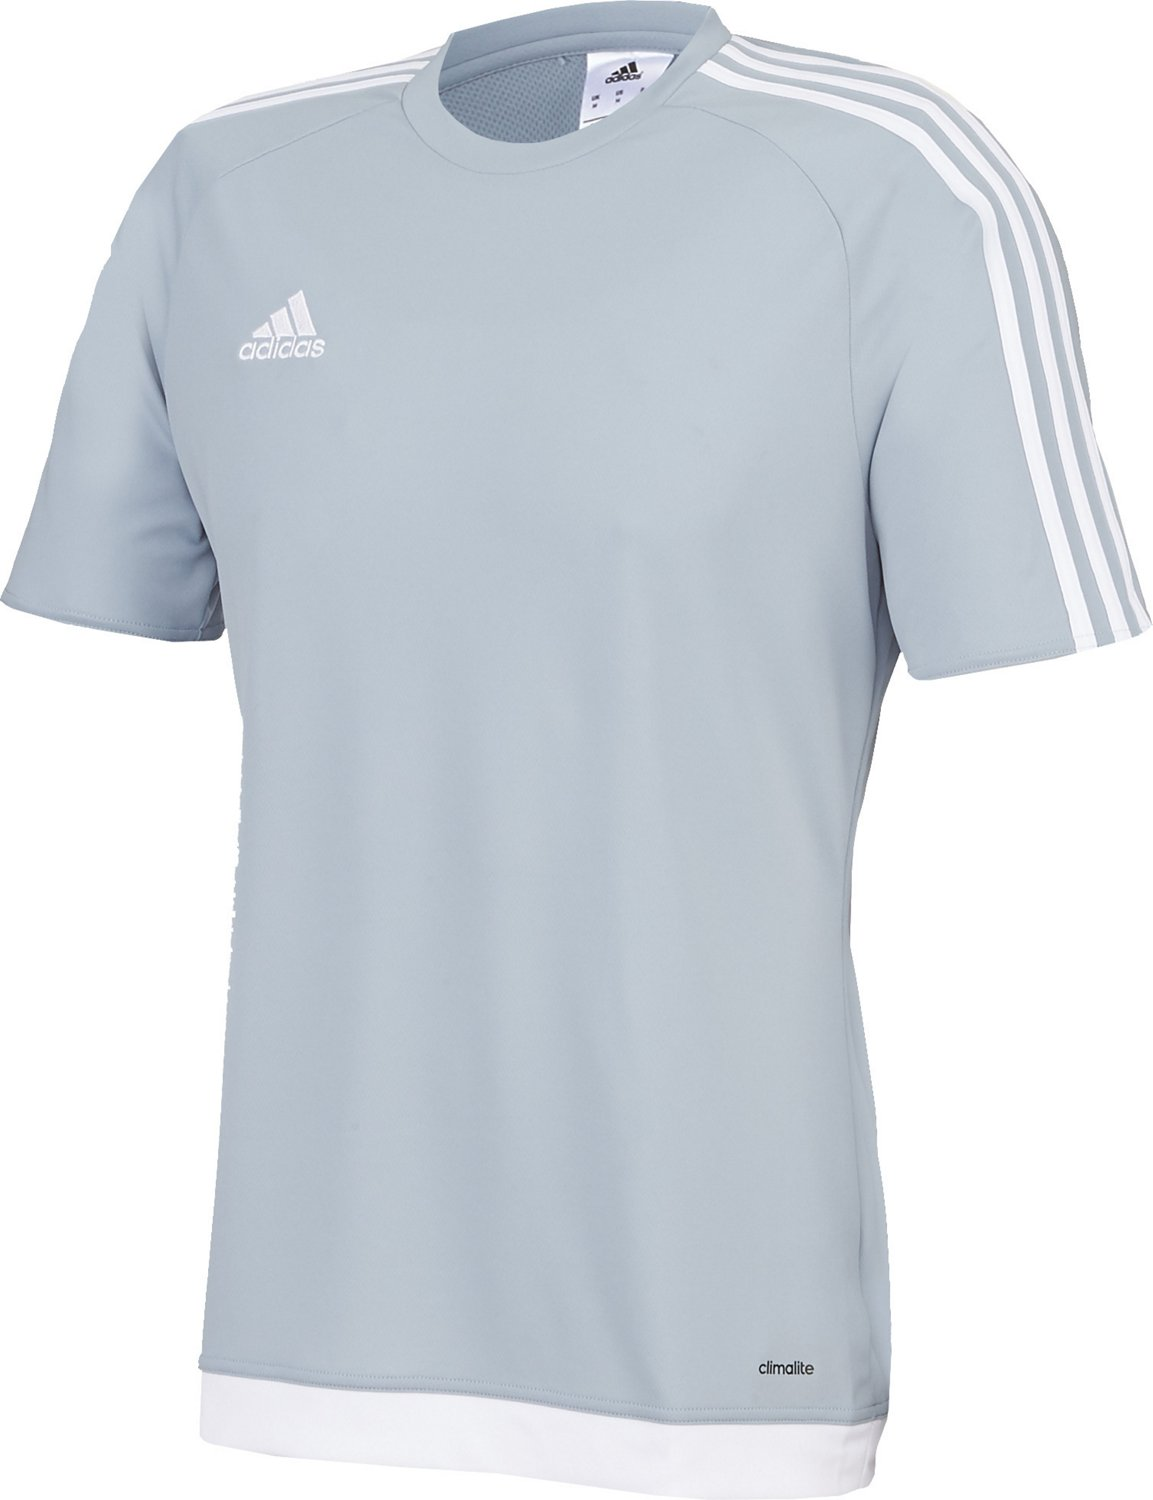 6db72e7755d Display product reviews for adidas Men s Estro 15 Soccer Jersey